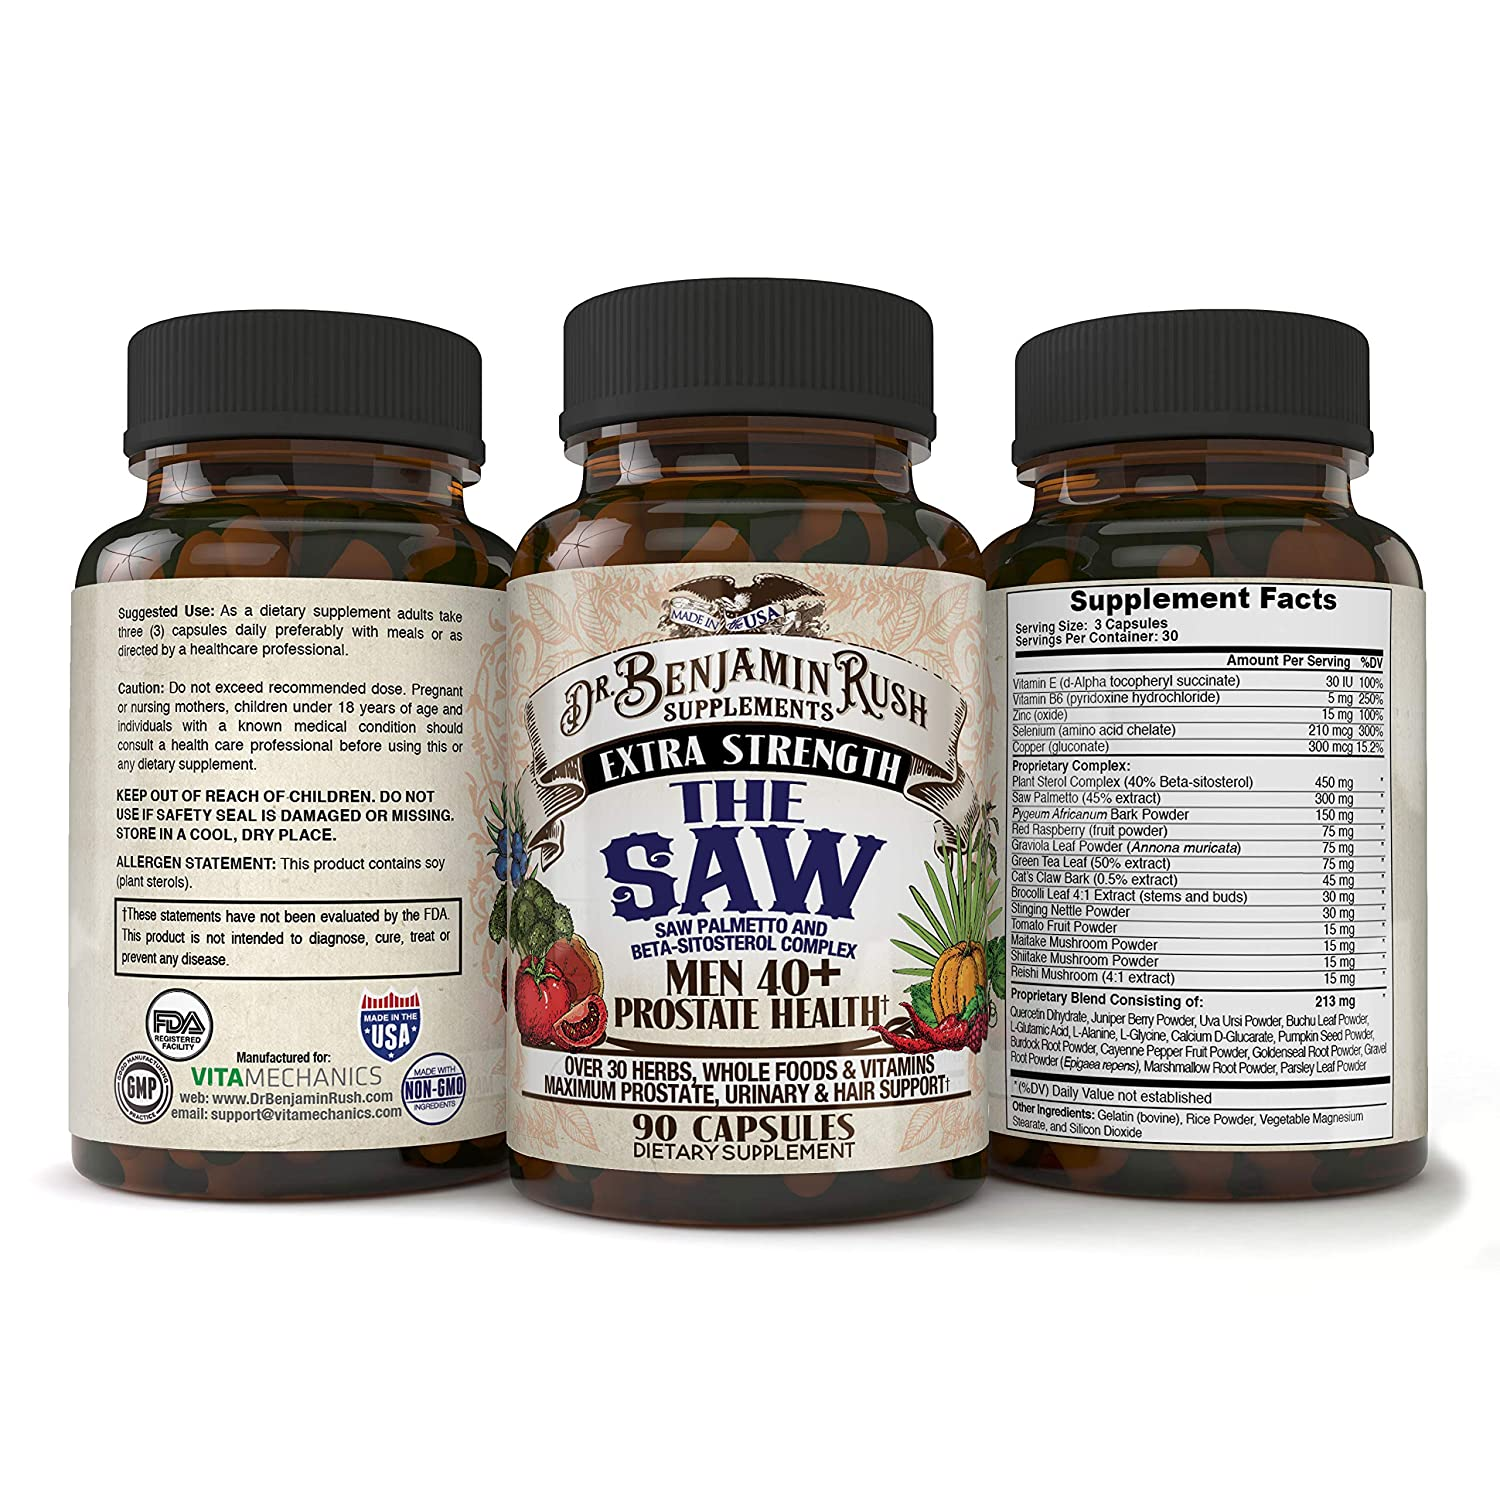 Dr Benjamin Rush Prostate Health Supplements for Men 40 Plus with the SAW, Saw Palmetto, Beta Sitosterol, Complete 30 Herbs, Vitamins and Whole Foods Support Frequent Urination, DHT Blocker Hair Loss